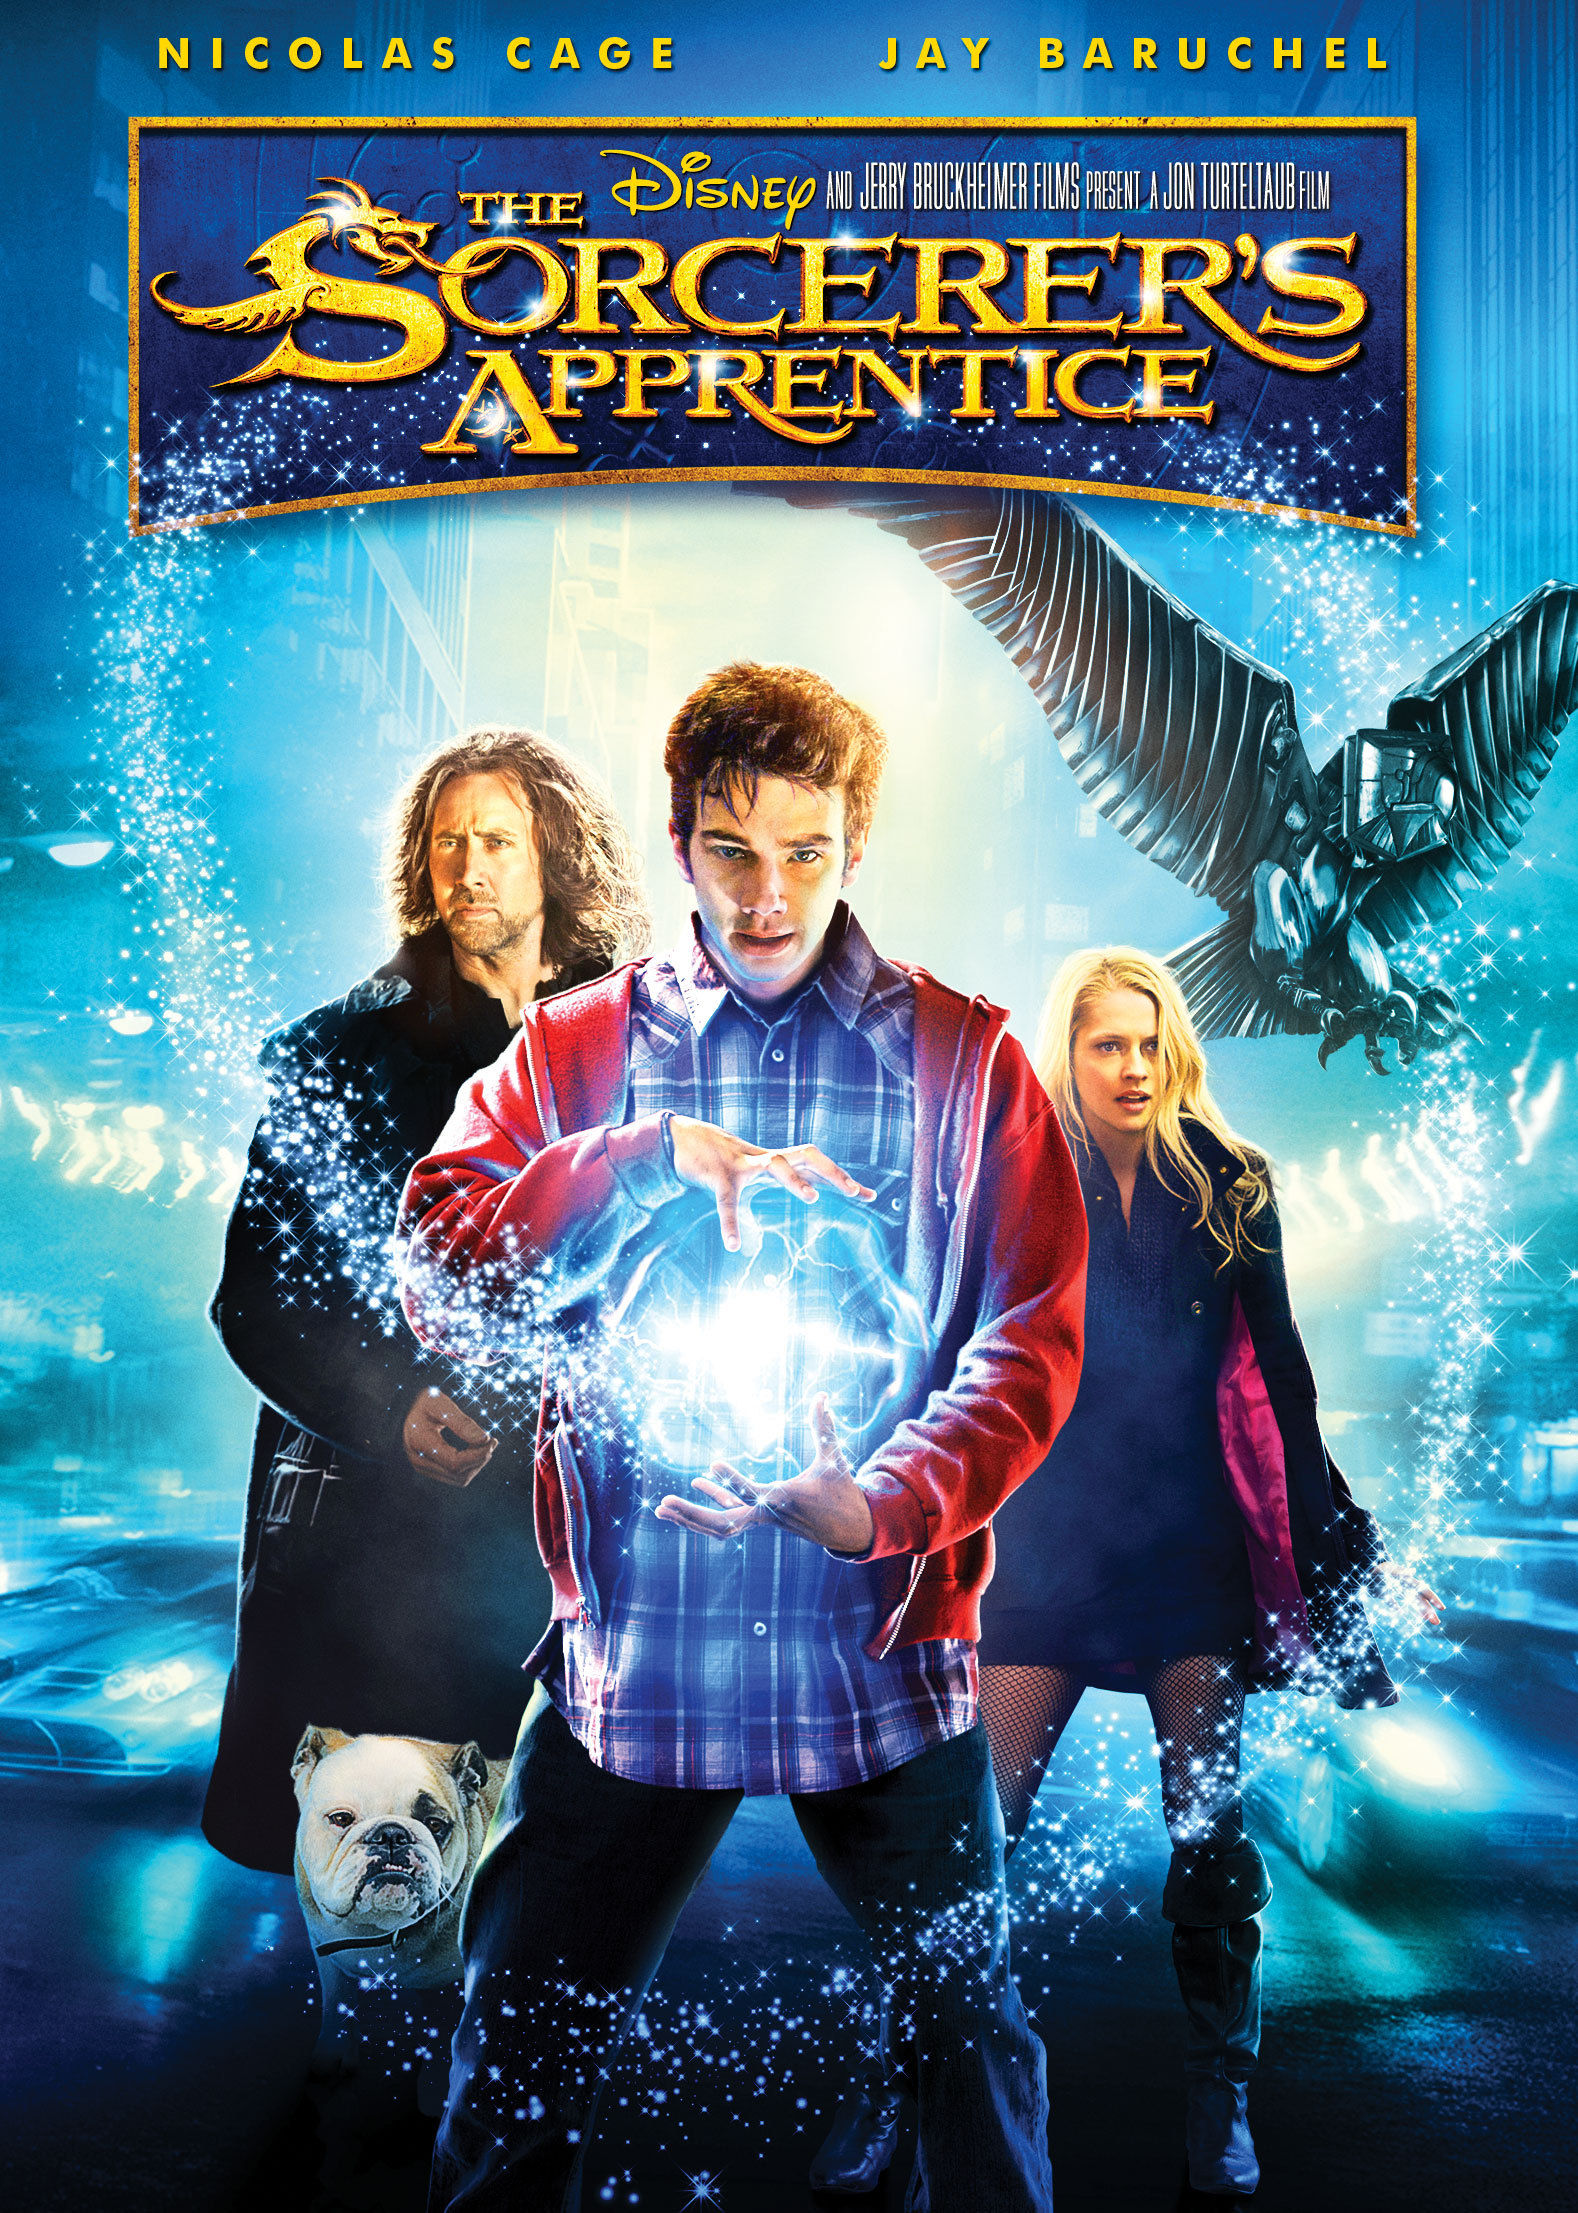 The Sorcerer's Apprentice, 2010